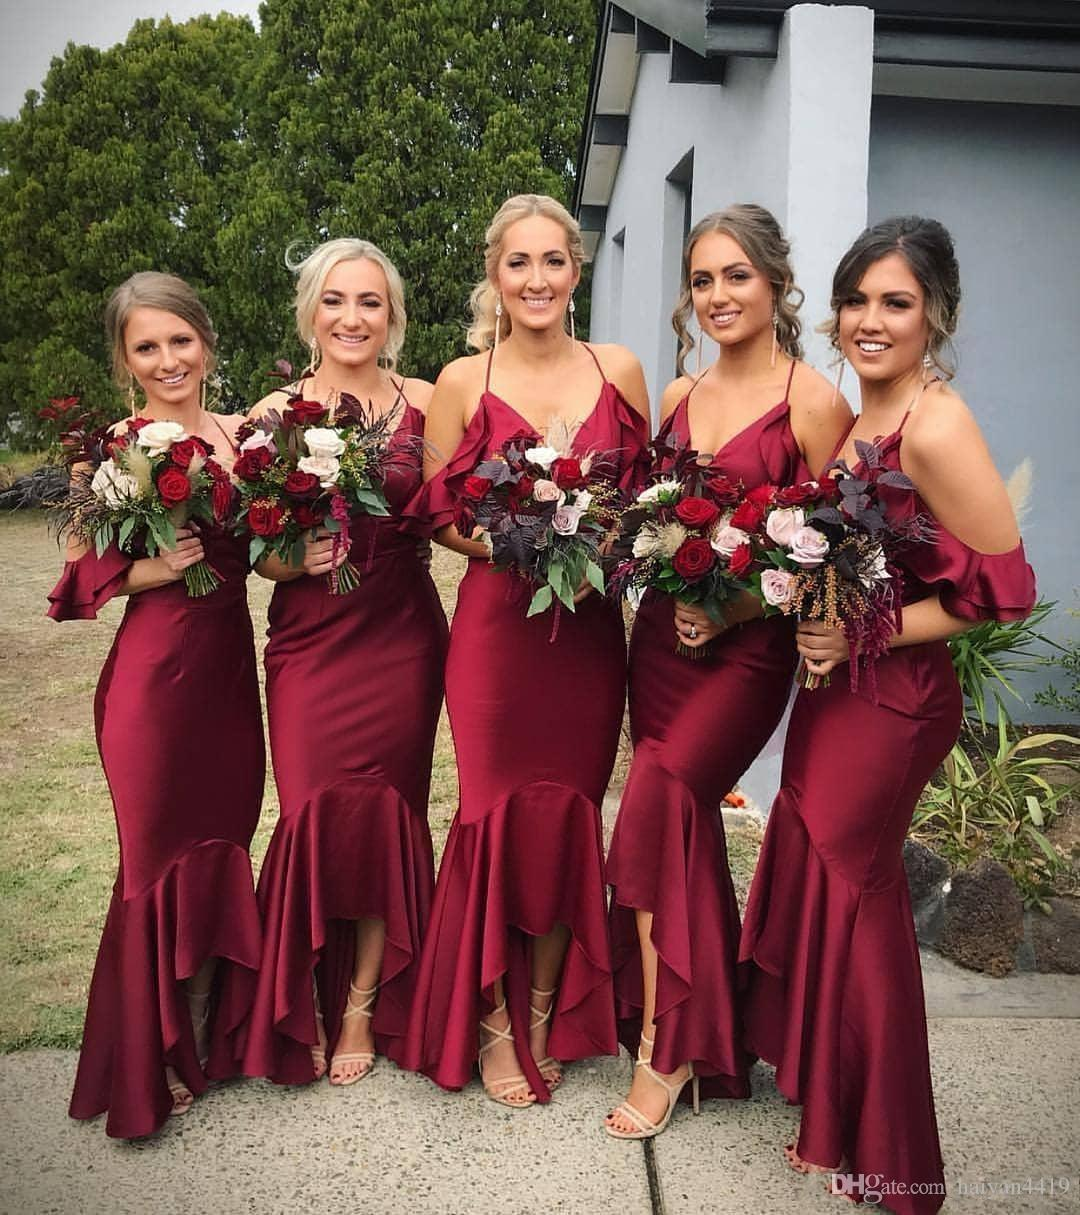 temperament shoes selected material pretty cheap 2019 Cheap Dark Red Mermaid Bridesmaid Dresses For Weddings Halter Neck  Deep V Neck Open Back High Low Party Maid Of Honor Gowns Two Tone  Bridesmaid ...